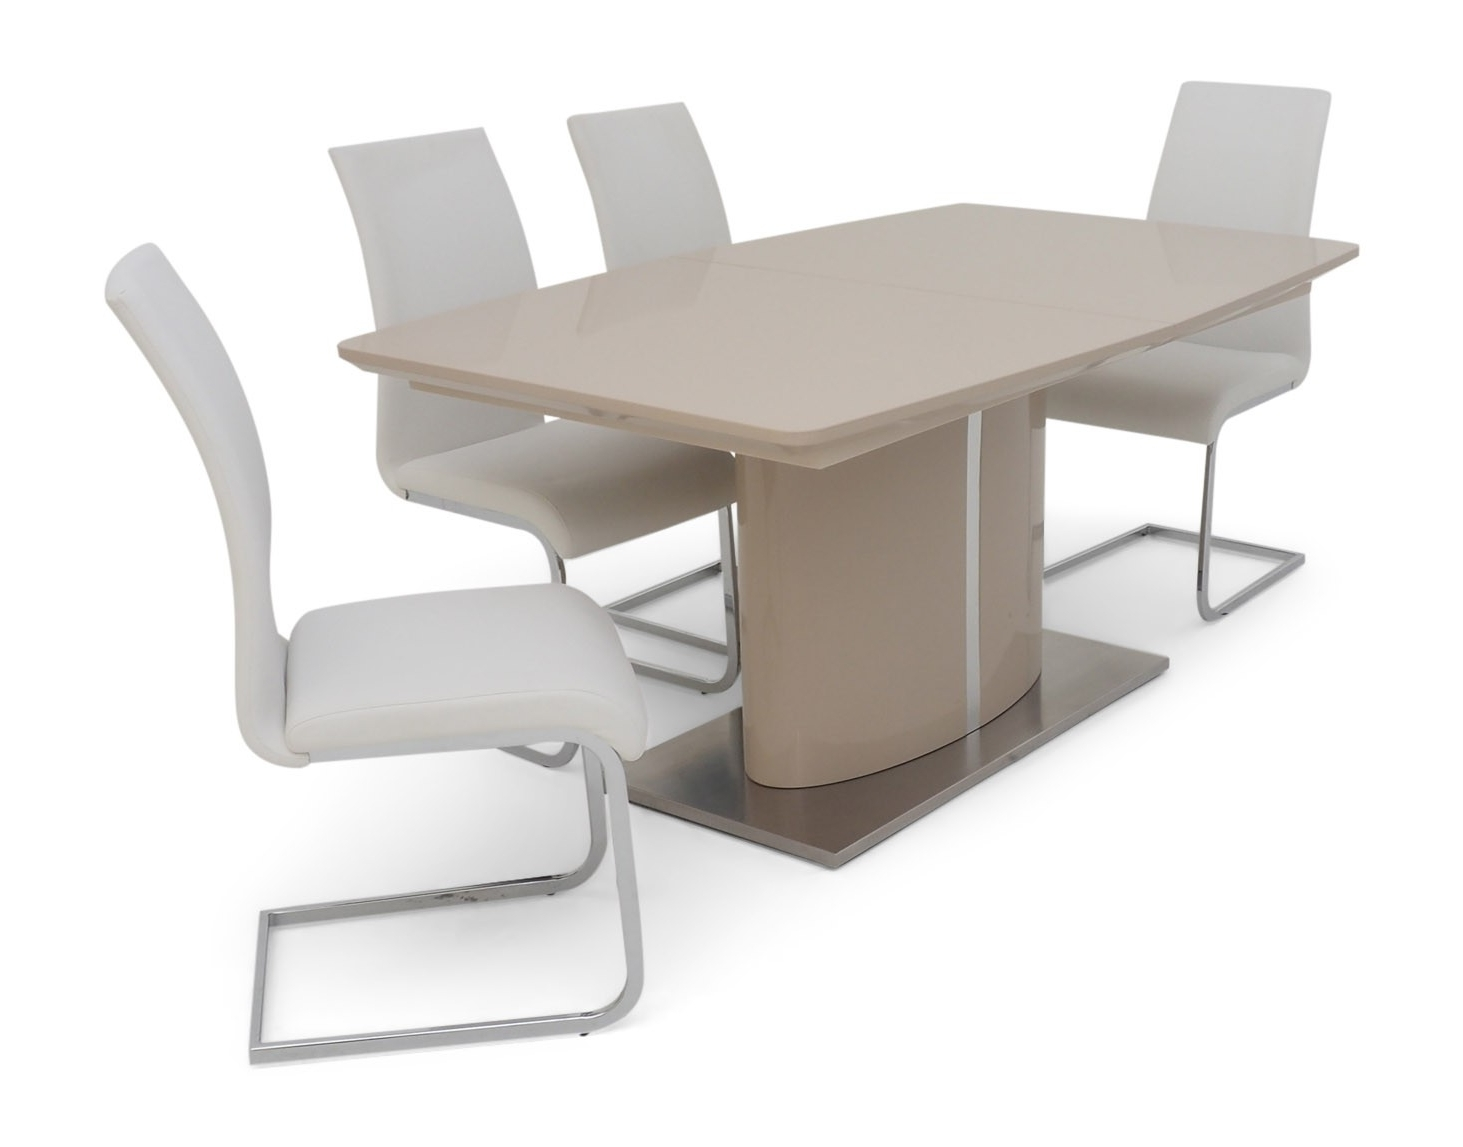 Extending Cream Gloss Dining Table + 6 Chairs Set intended for Favorite Cream Gloss Dining Tables And Chairs